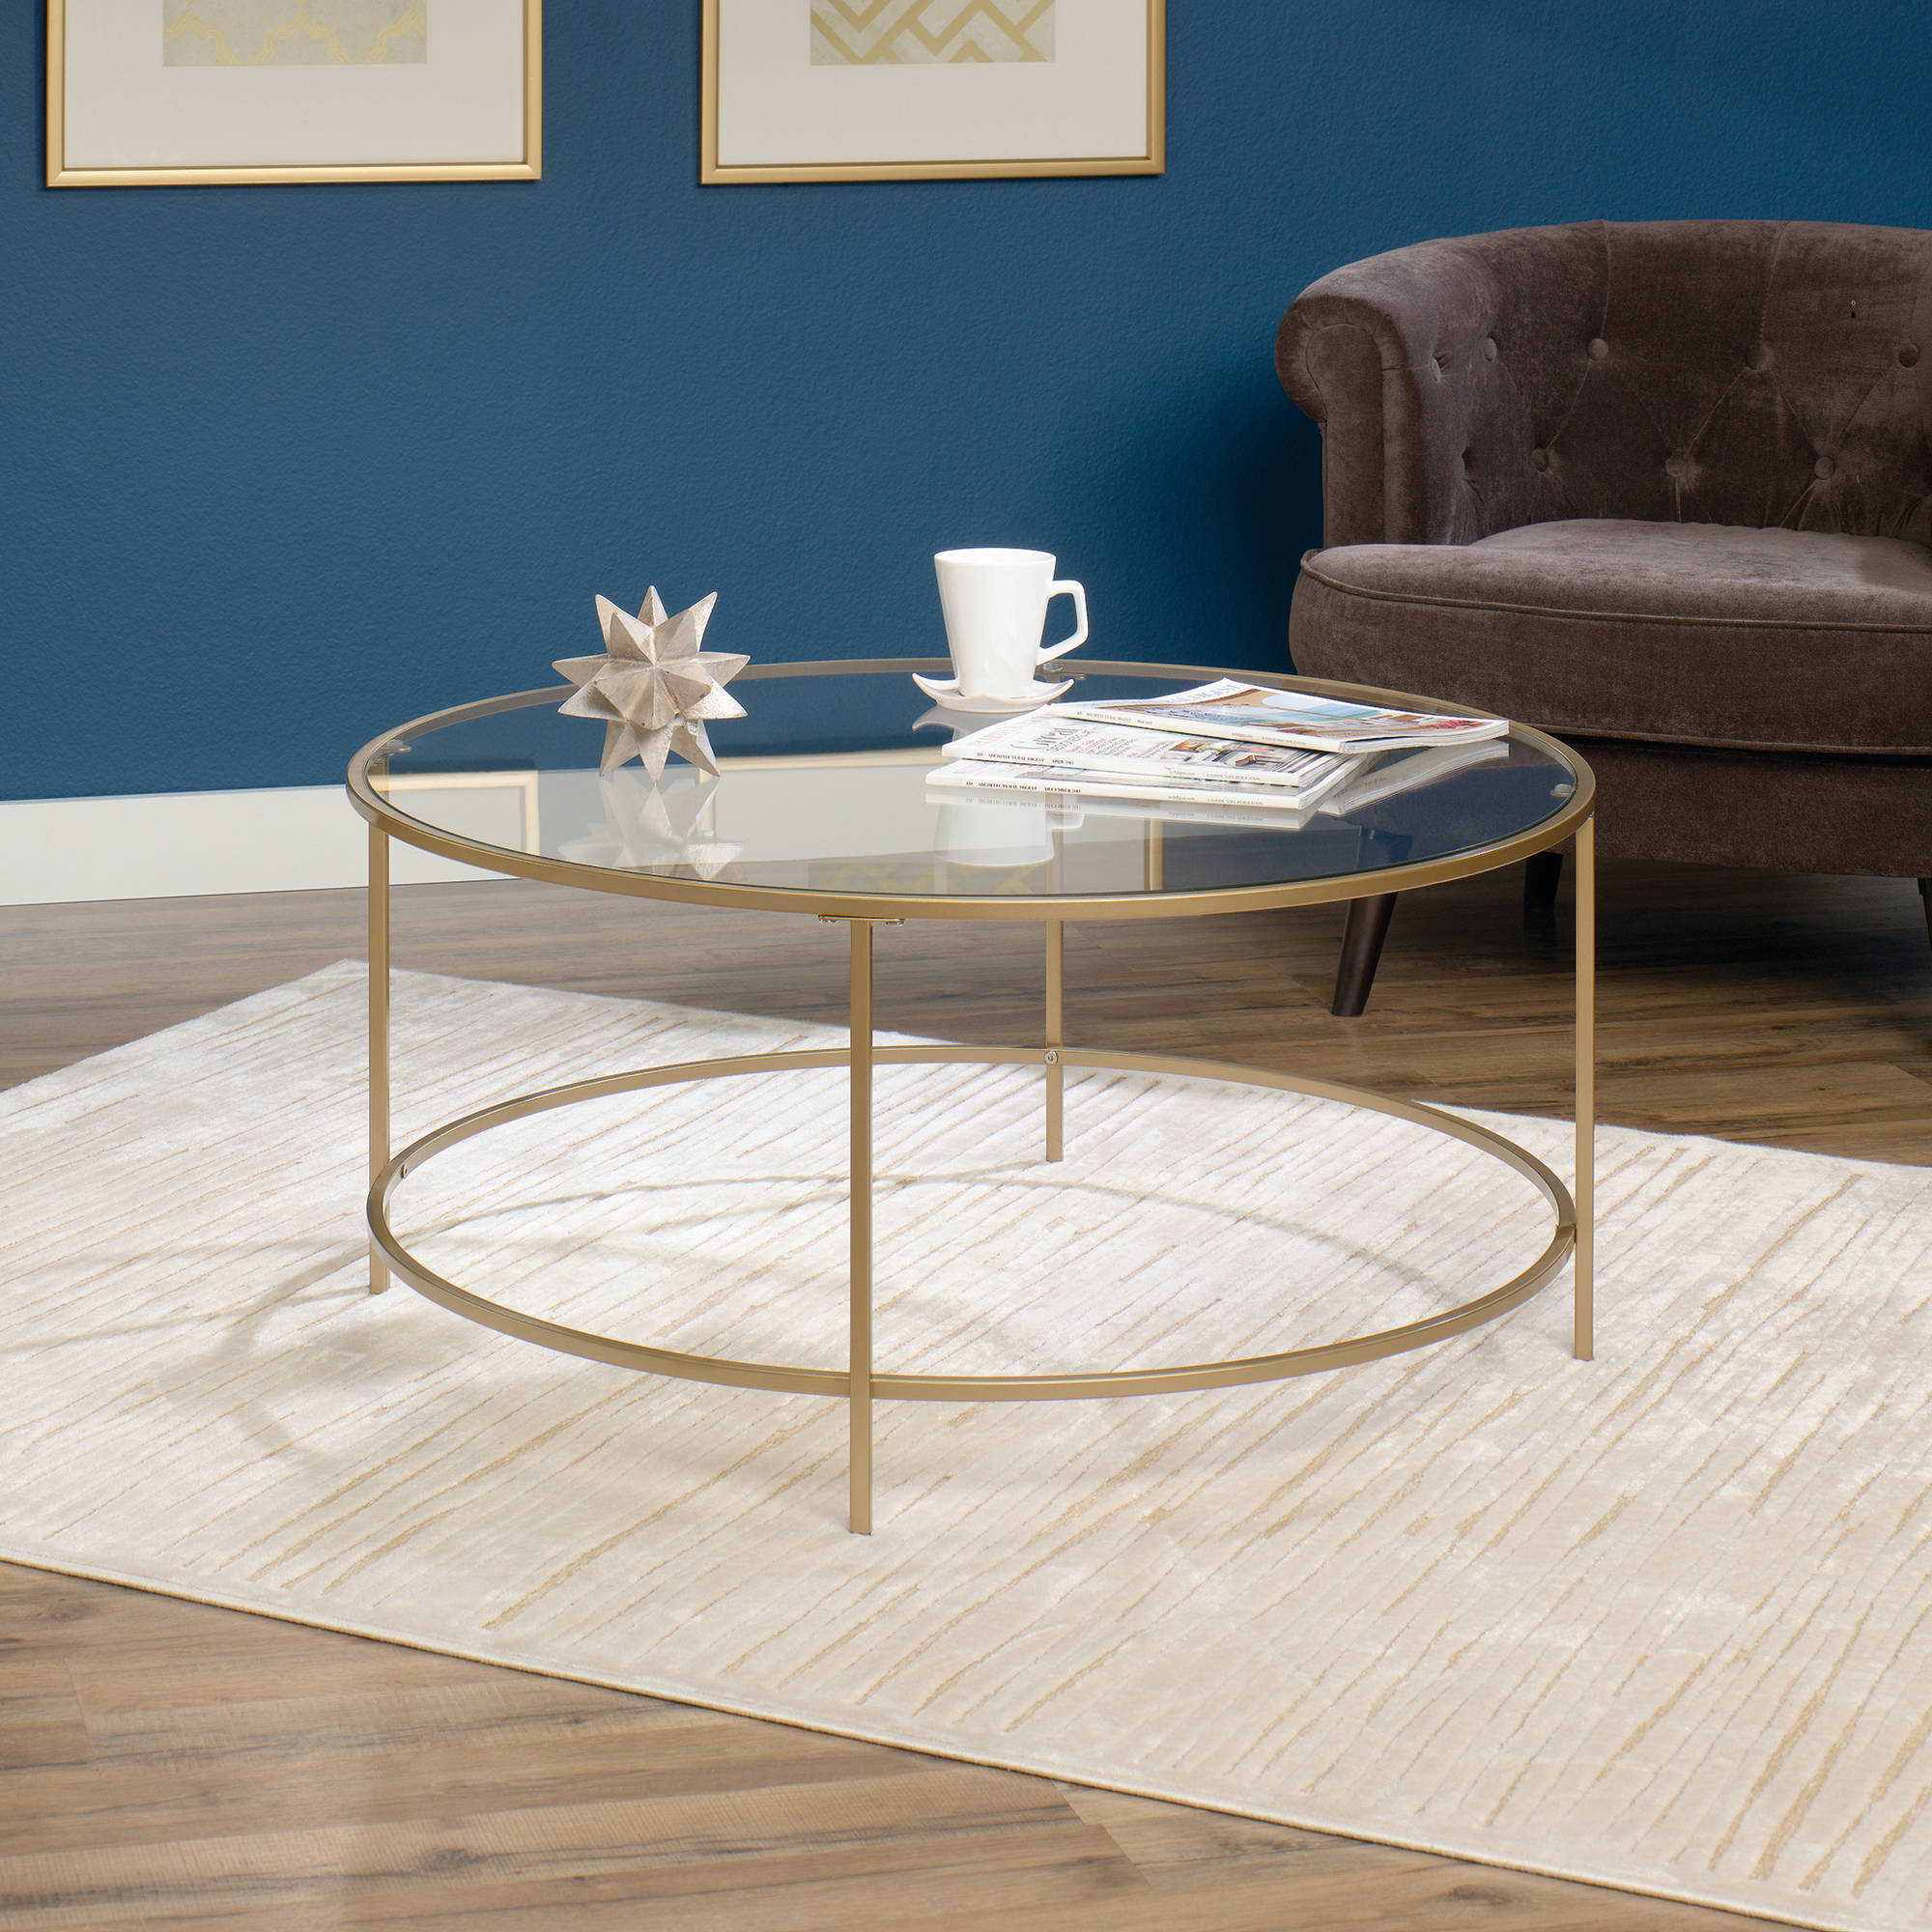 Sauder International Lux Round Coffee Table Satin Gold Walmart